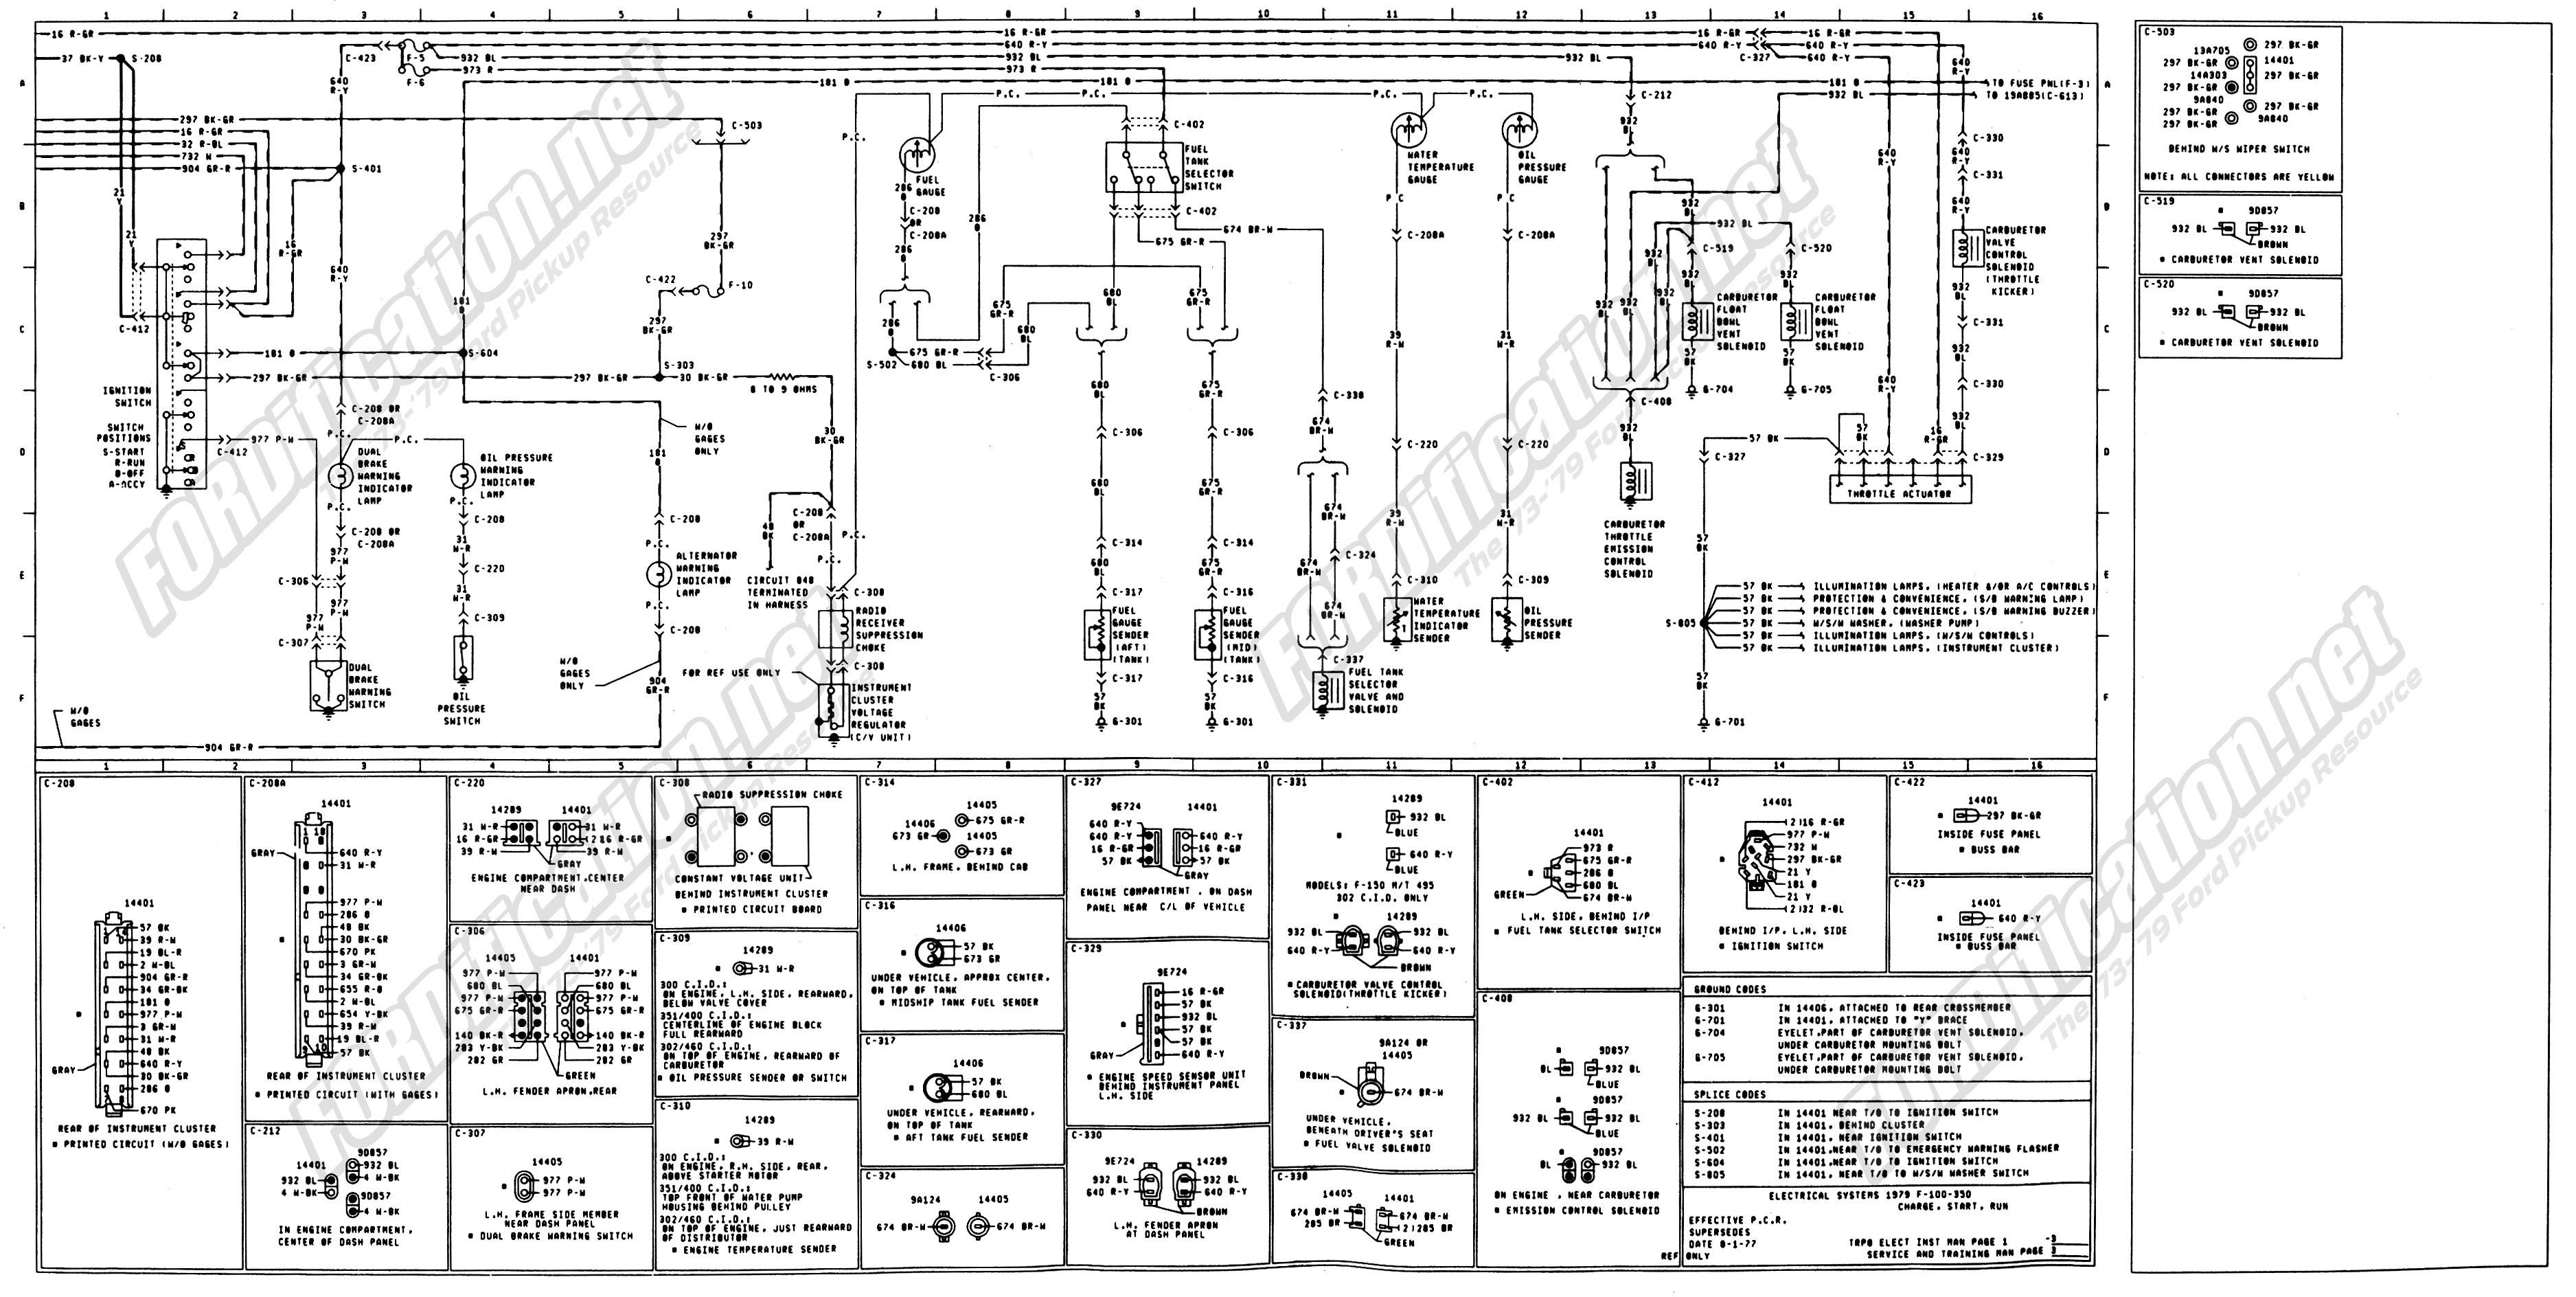 1973 1979 Ford Truck Wiring Diagrams & Schematics | Ford truck, Diagram,  F250 | Ford F 350 Wiring Diagram For 1973 |  | Pinterest